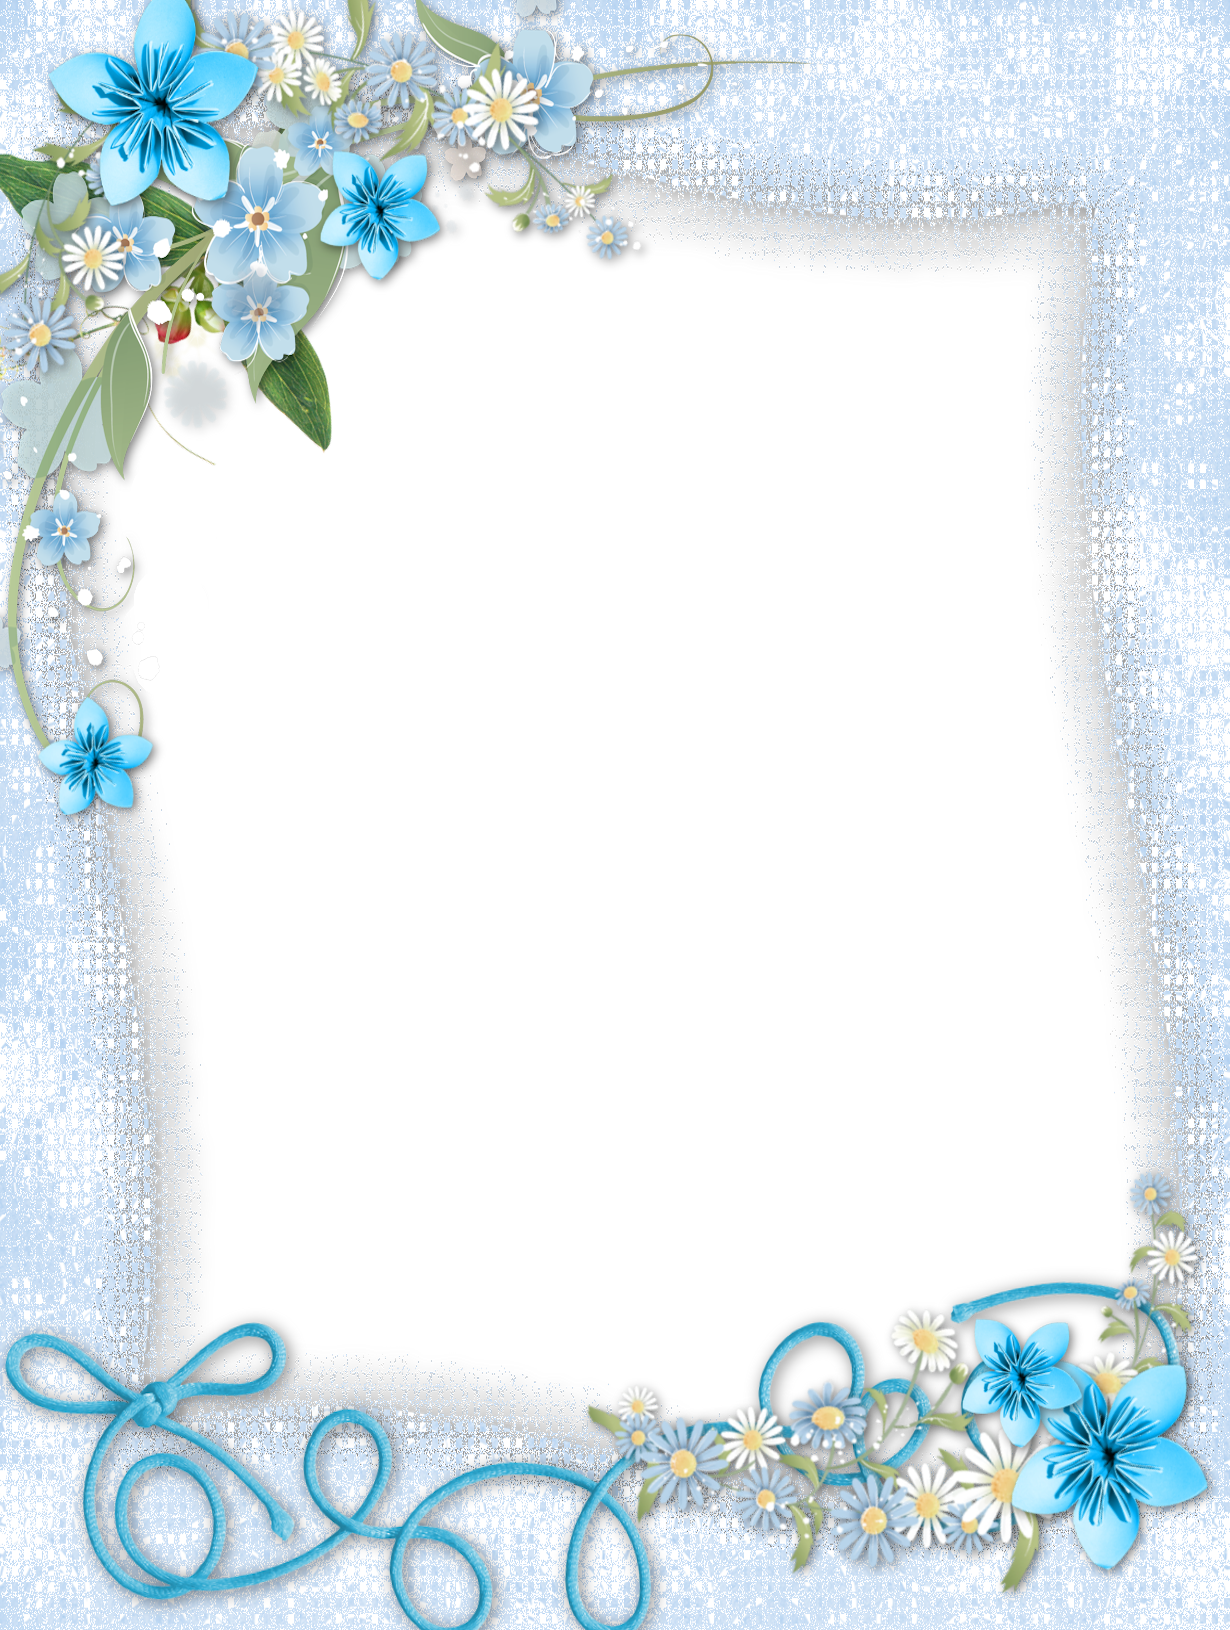 Transparent with flowers gallery. Blue frame png